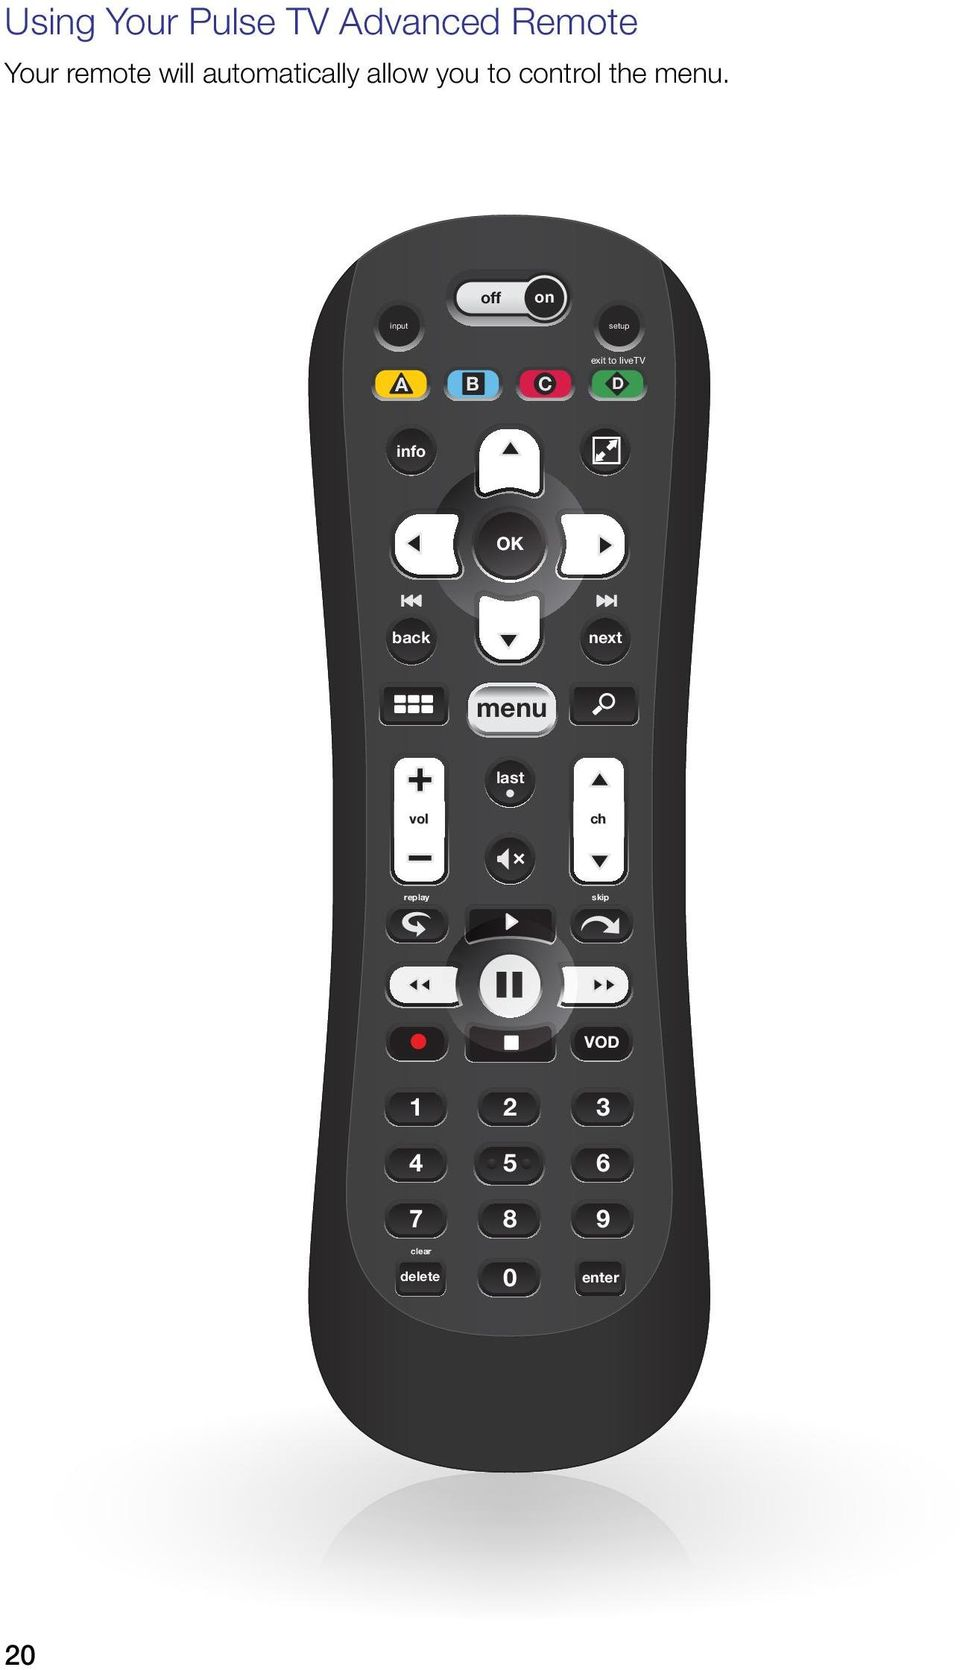 20 7 8 9 clear 4 5 6 enter 0 Using Your Pulse TV Advanced Remote